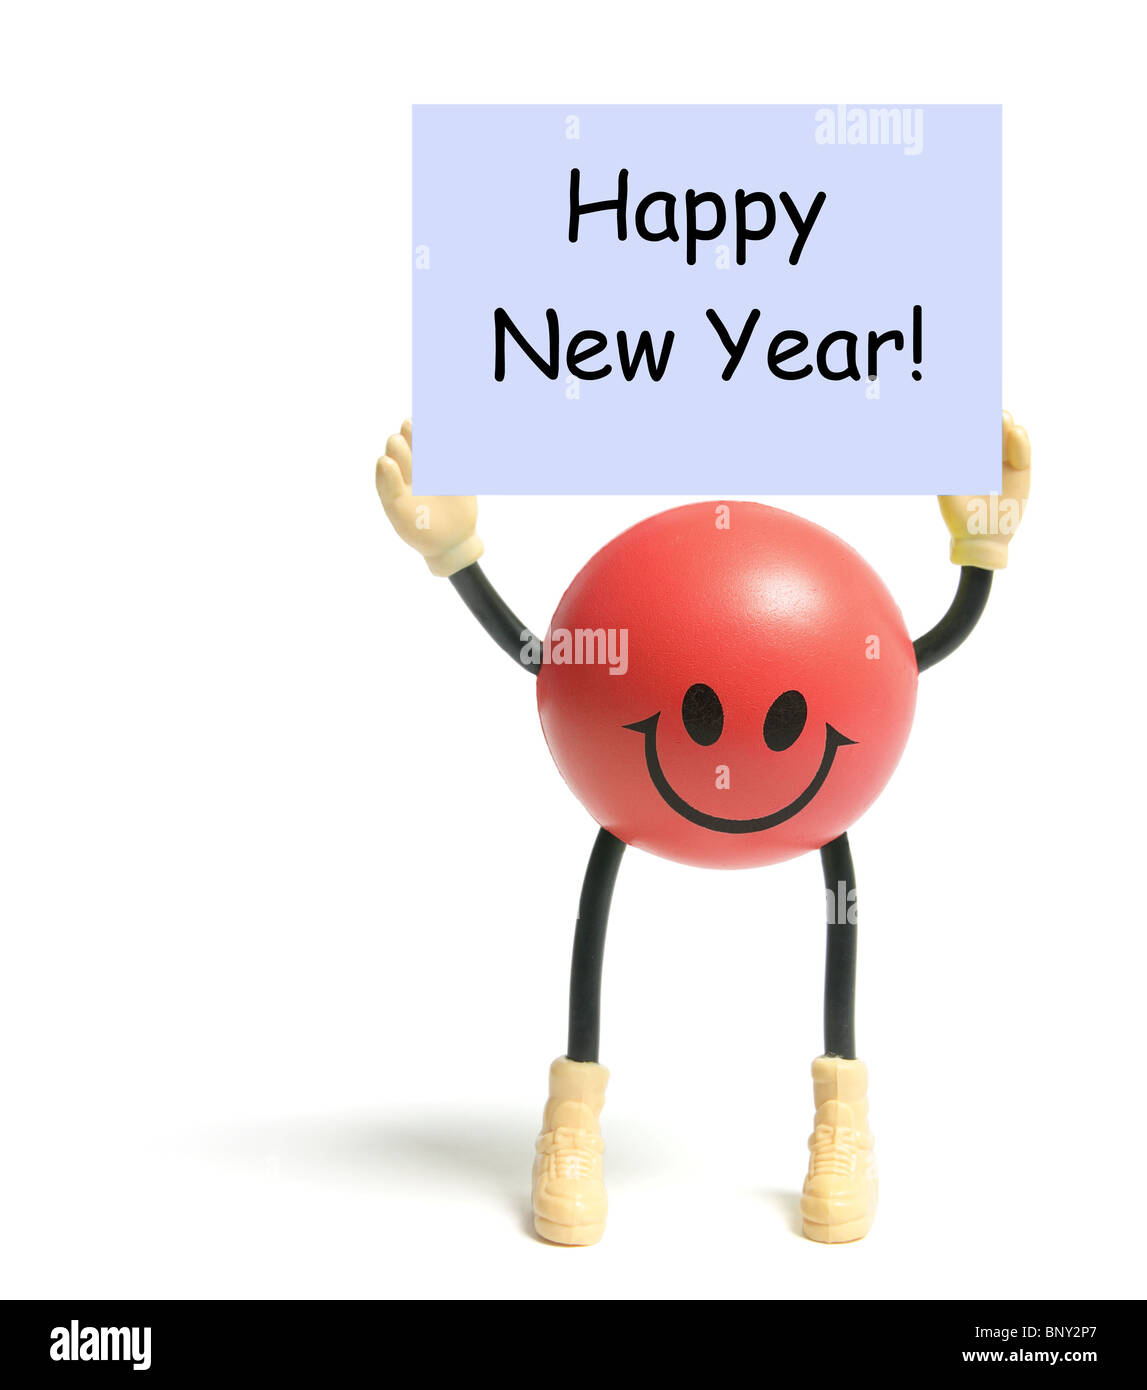 Smiley Toy with Happy New Year Greeting Stock Photo